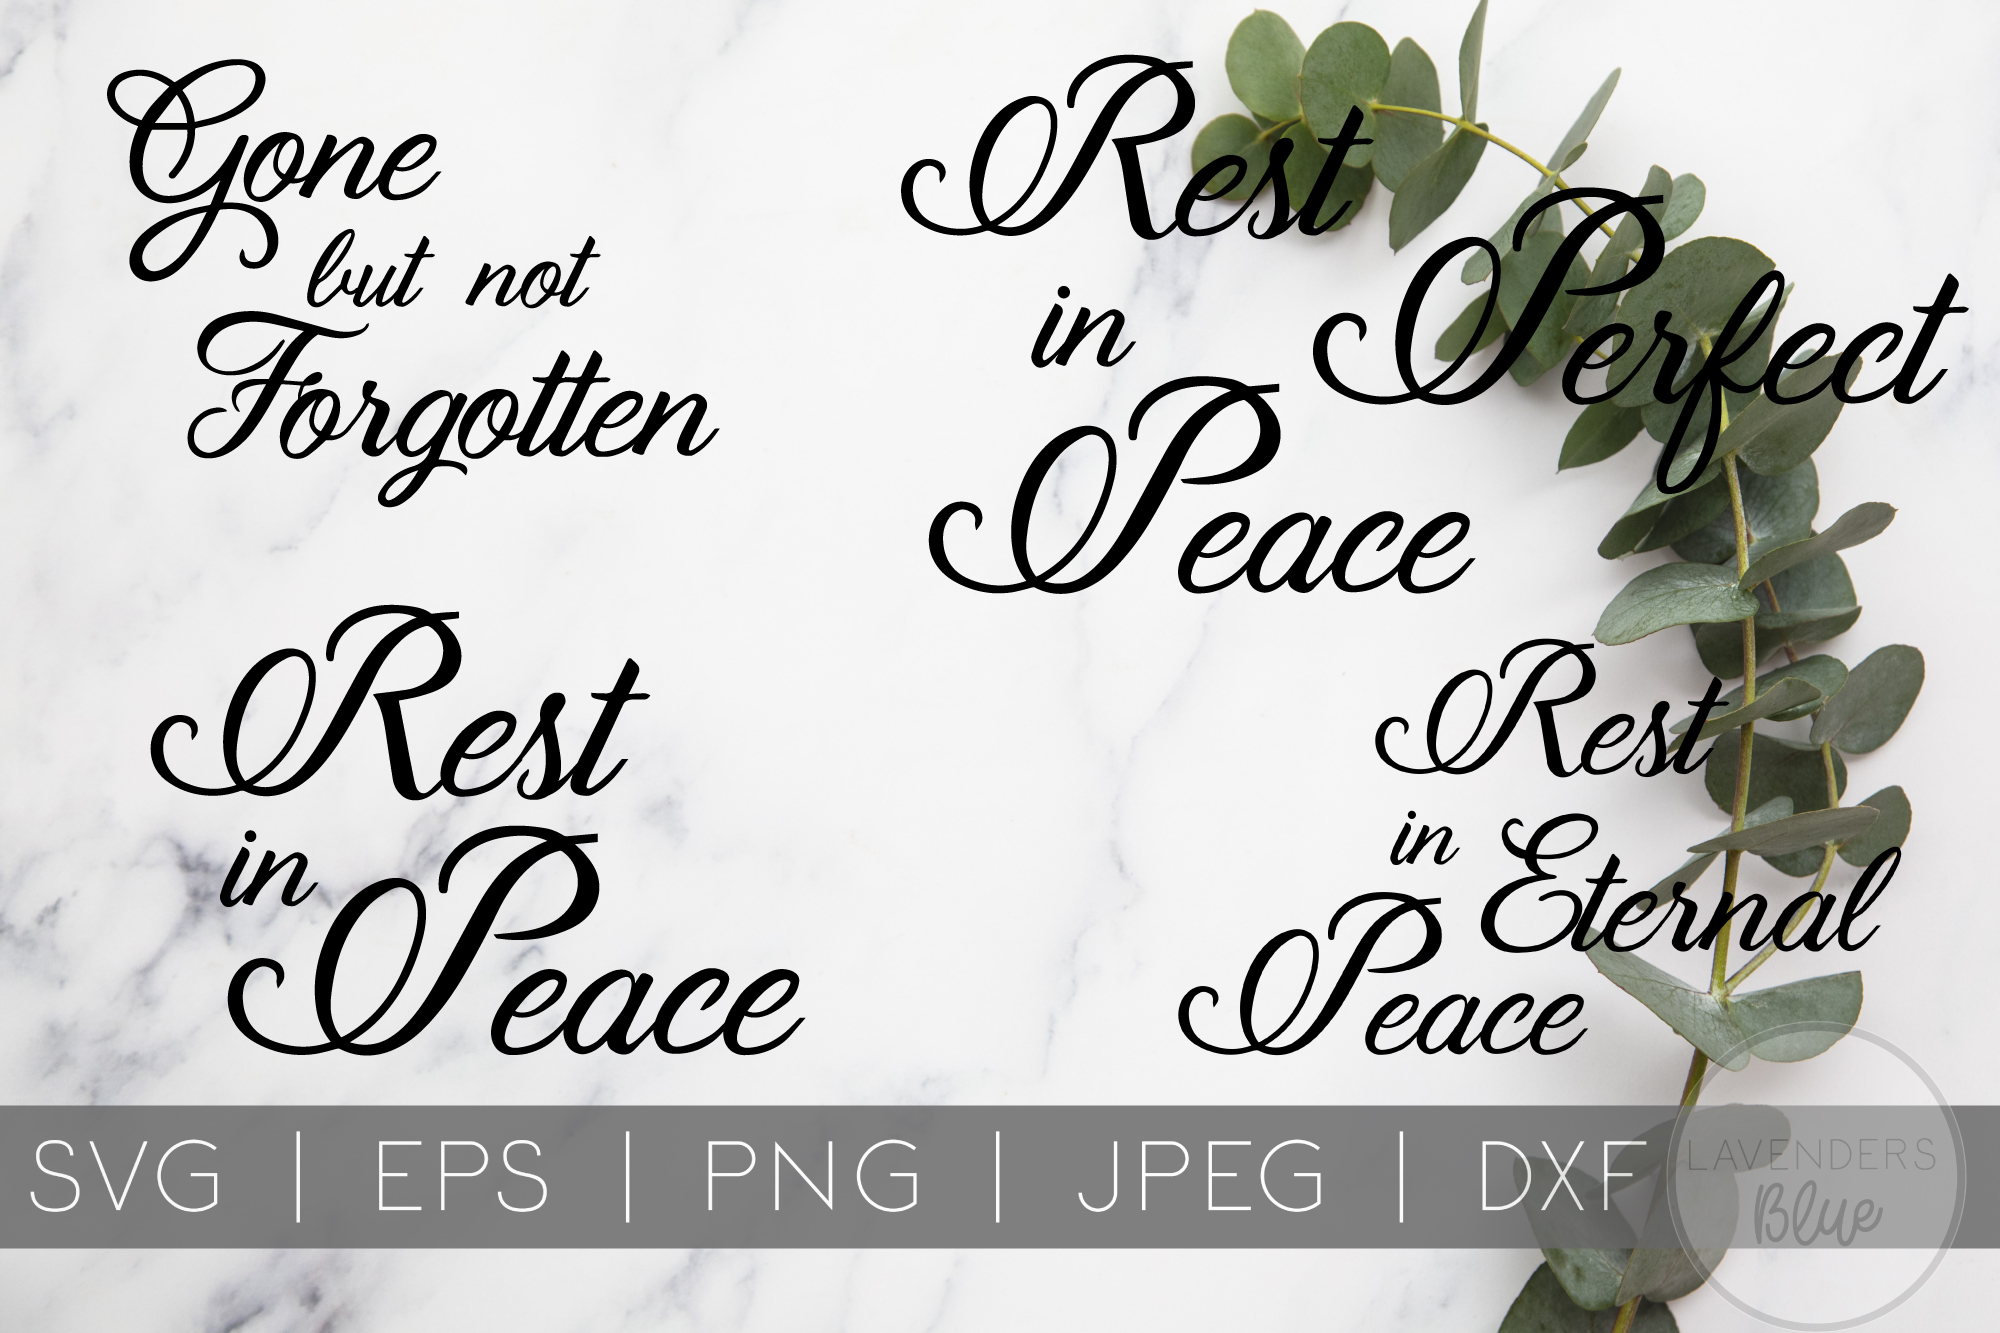 Rest in Peace SVG Bundle | EPS | PNG | DXF example image 2